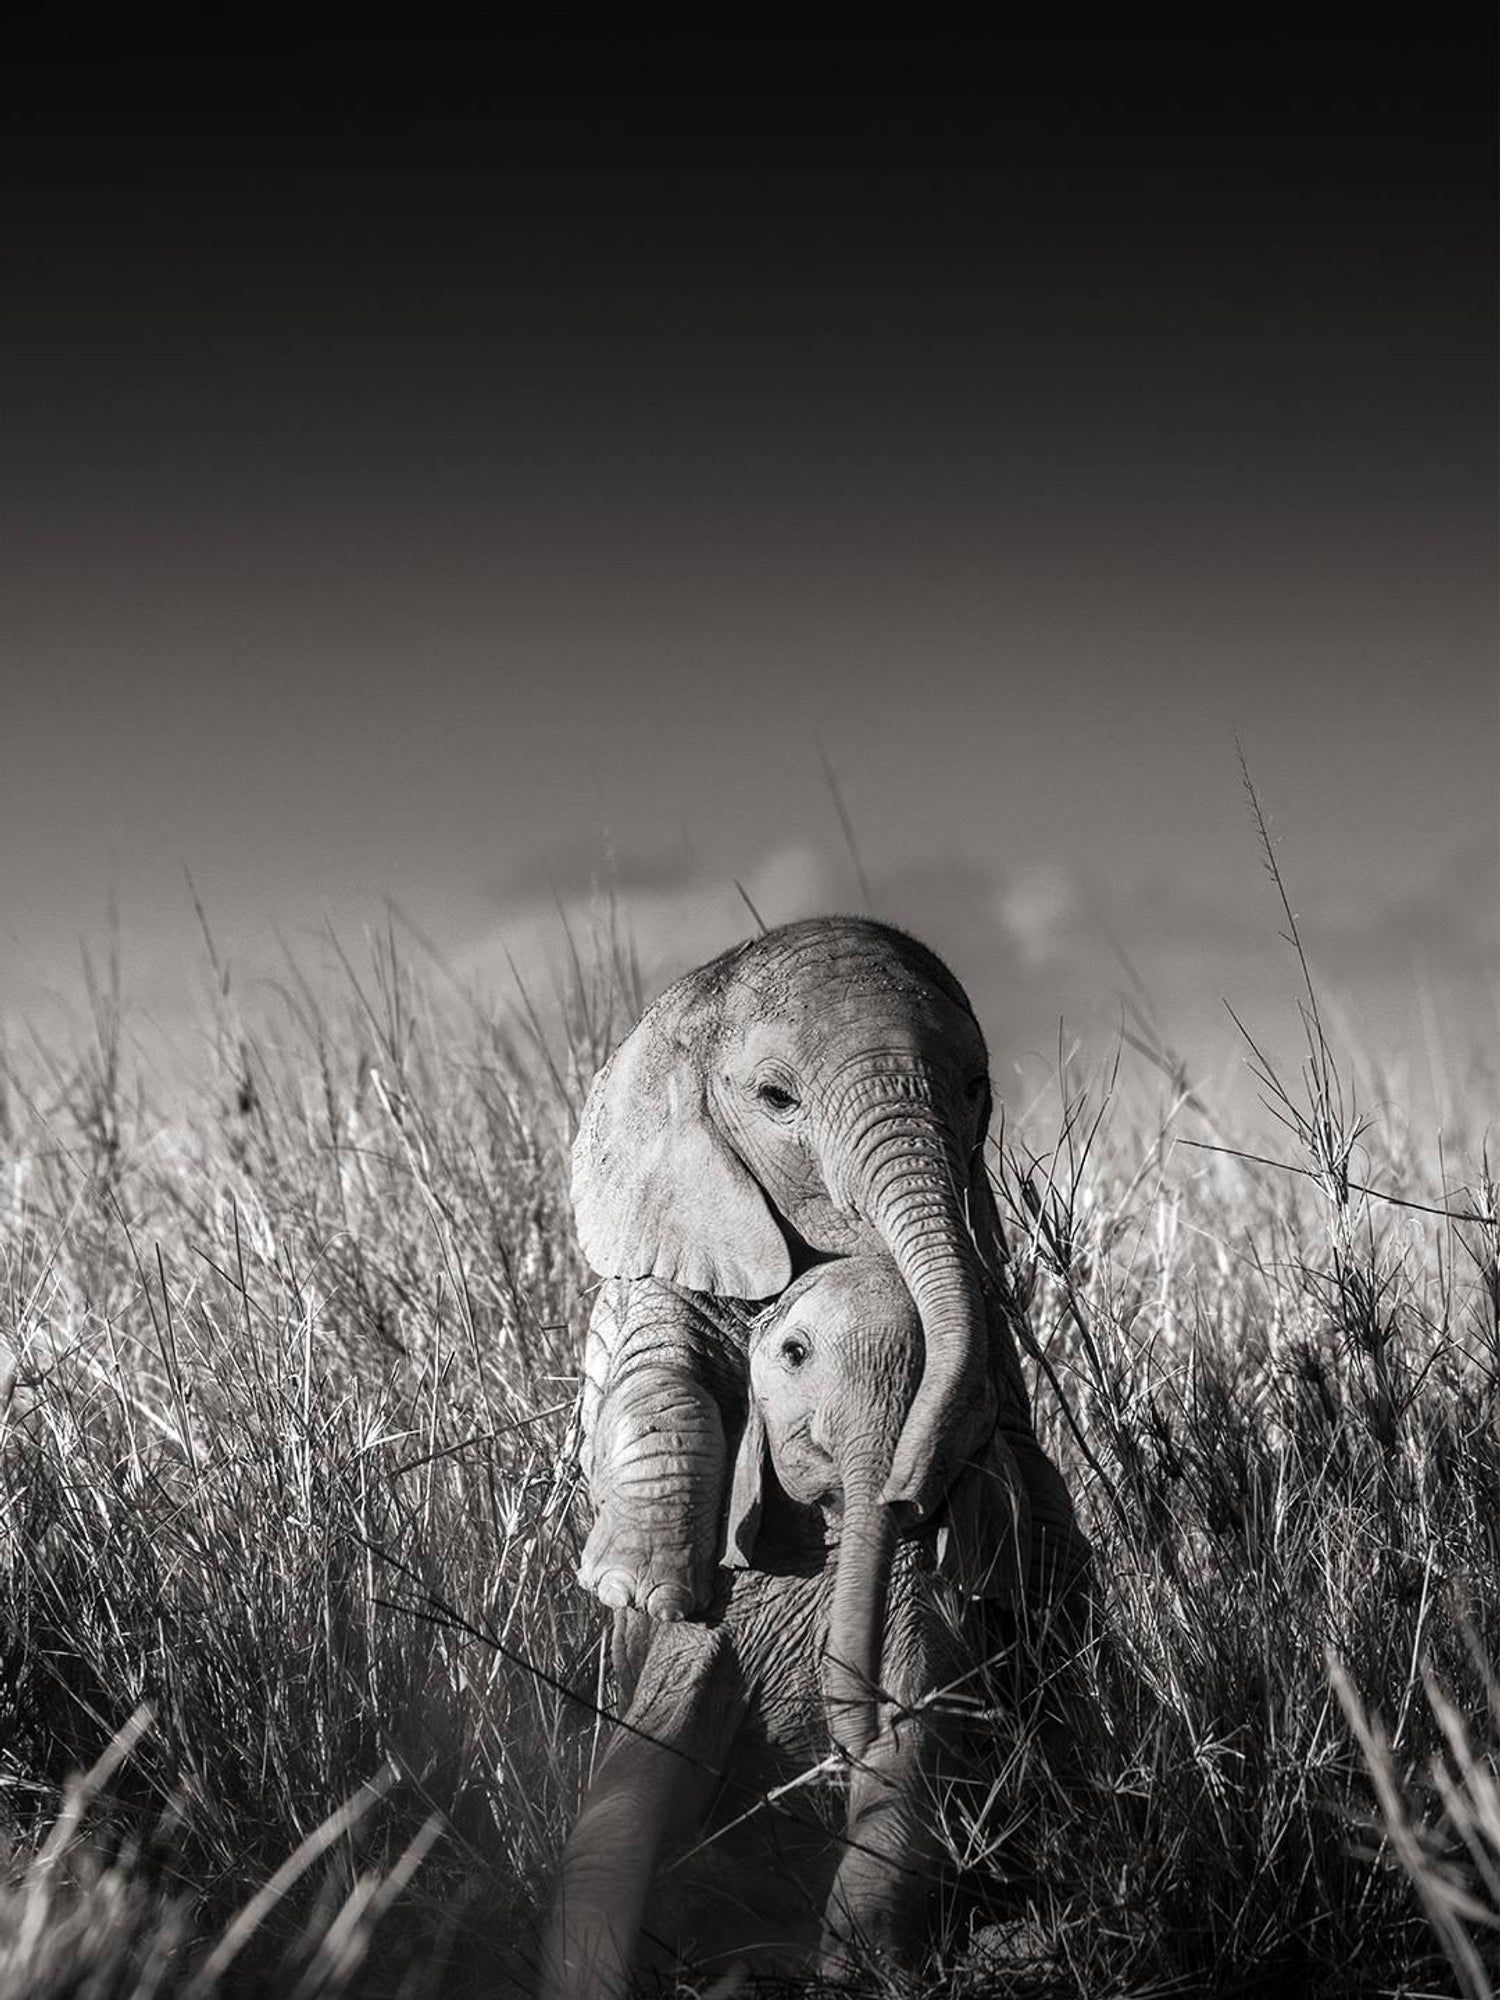 Wild elephant babies playing I, 21st century, contemporary, wildlife